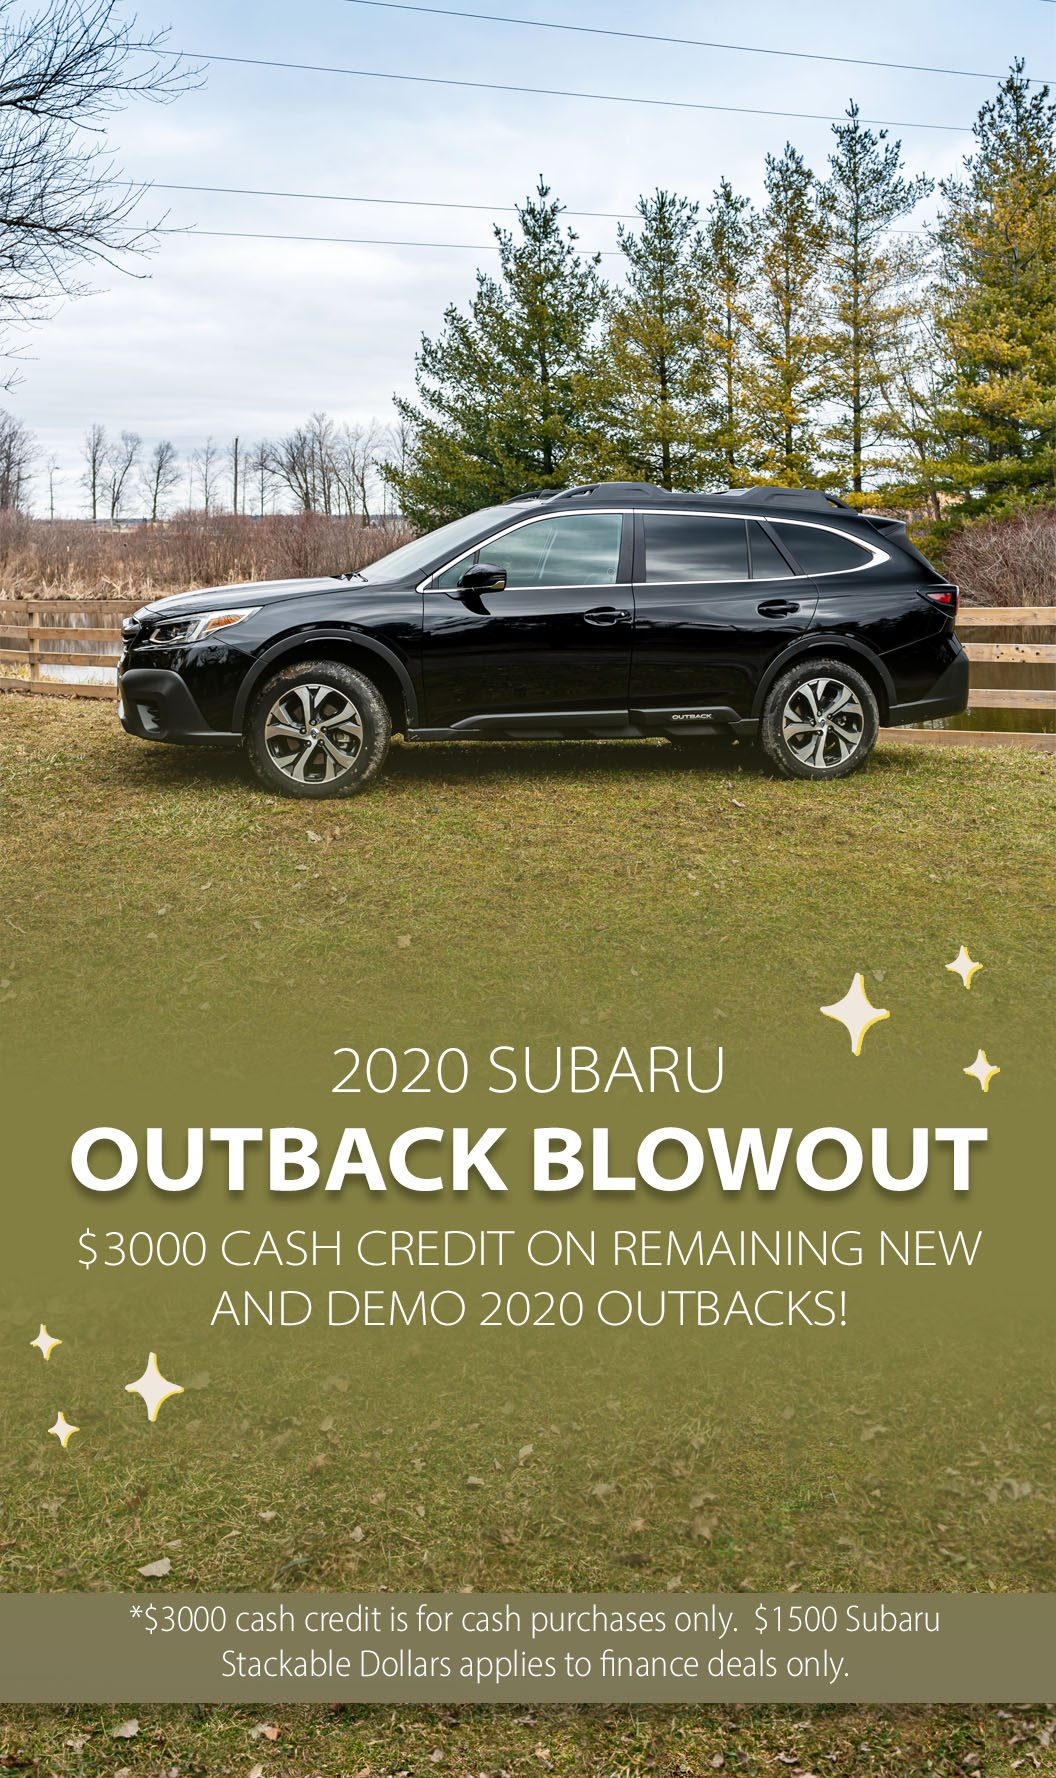 Outback blowout